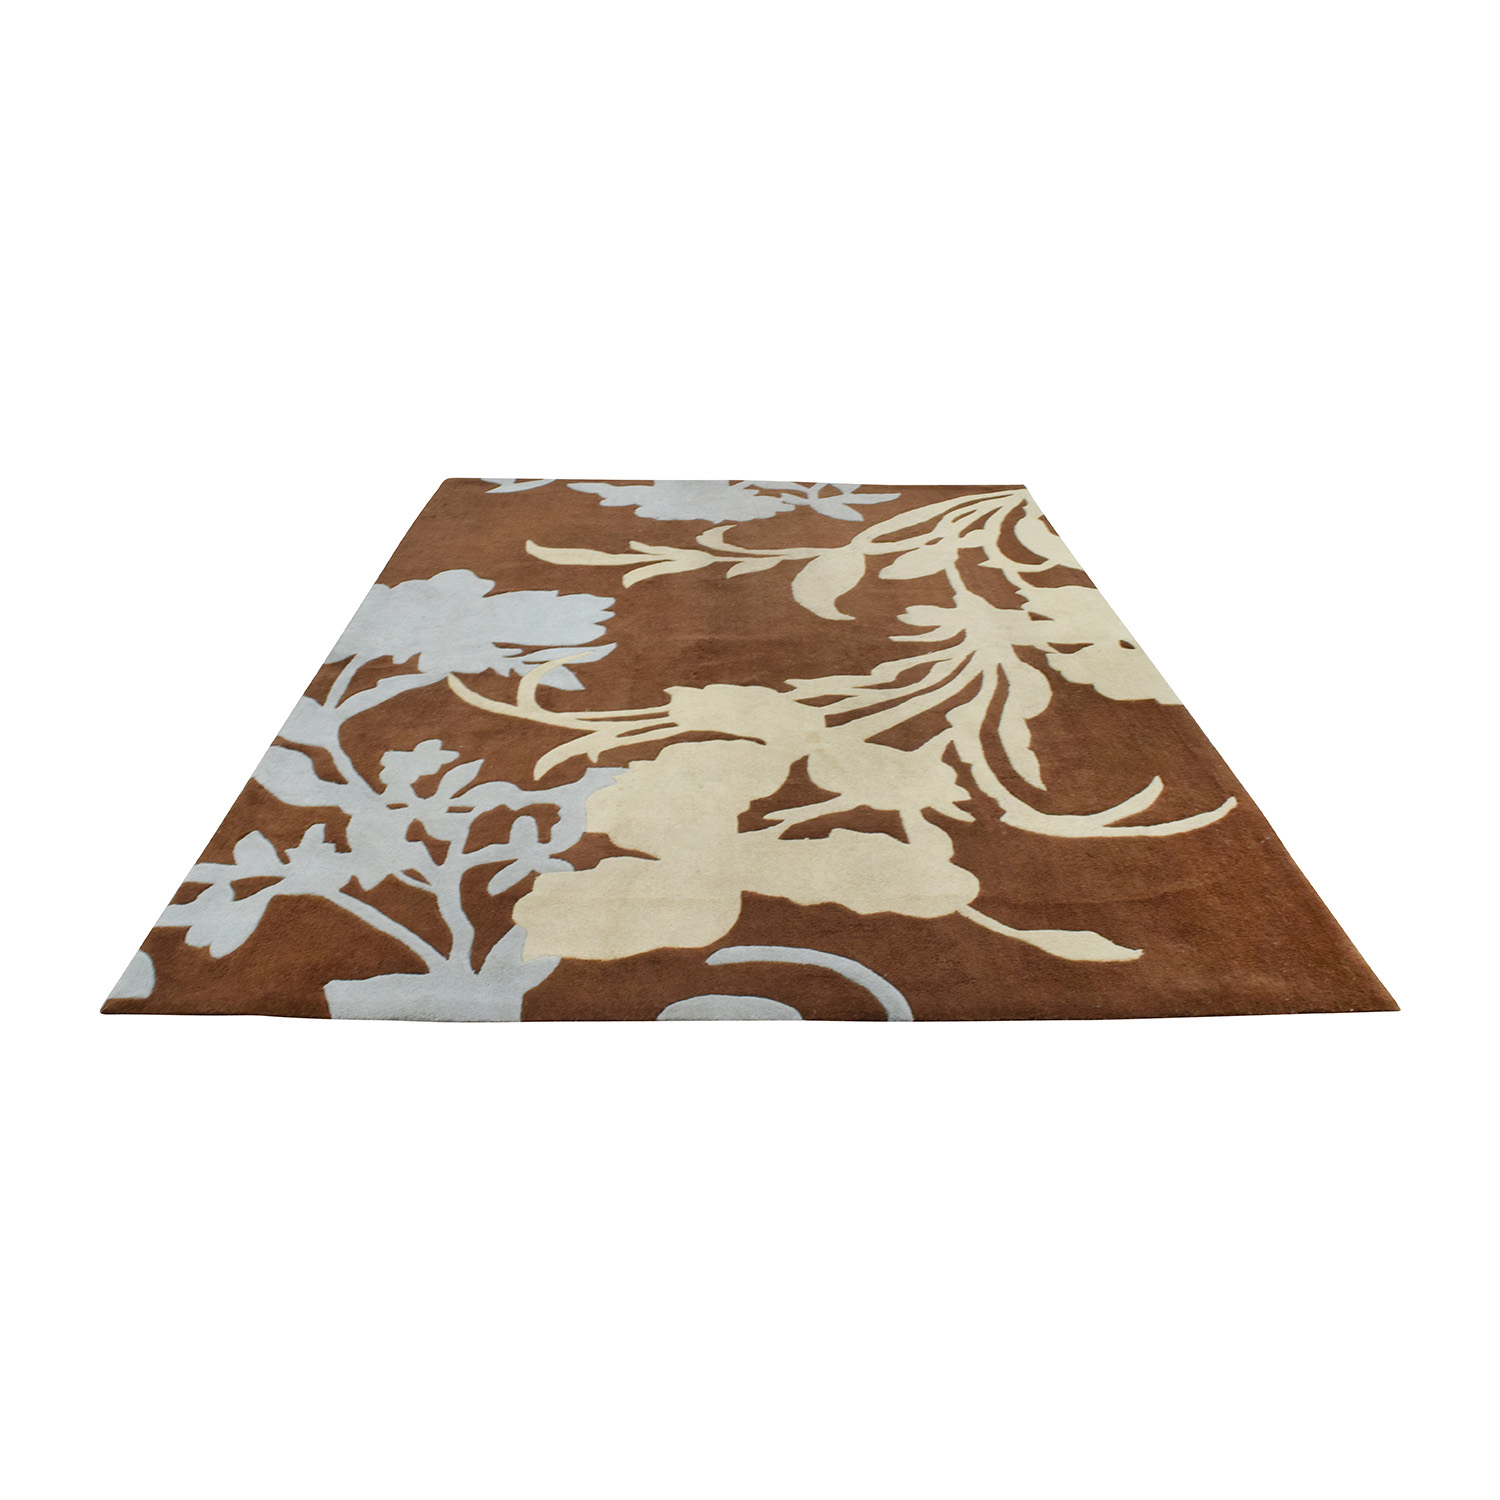 NuLOOM NuLOOM Hand-Hooked Brown Wool Rug for sale